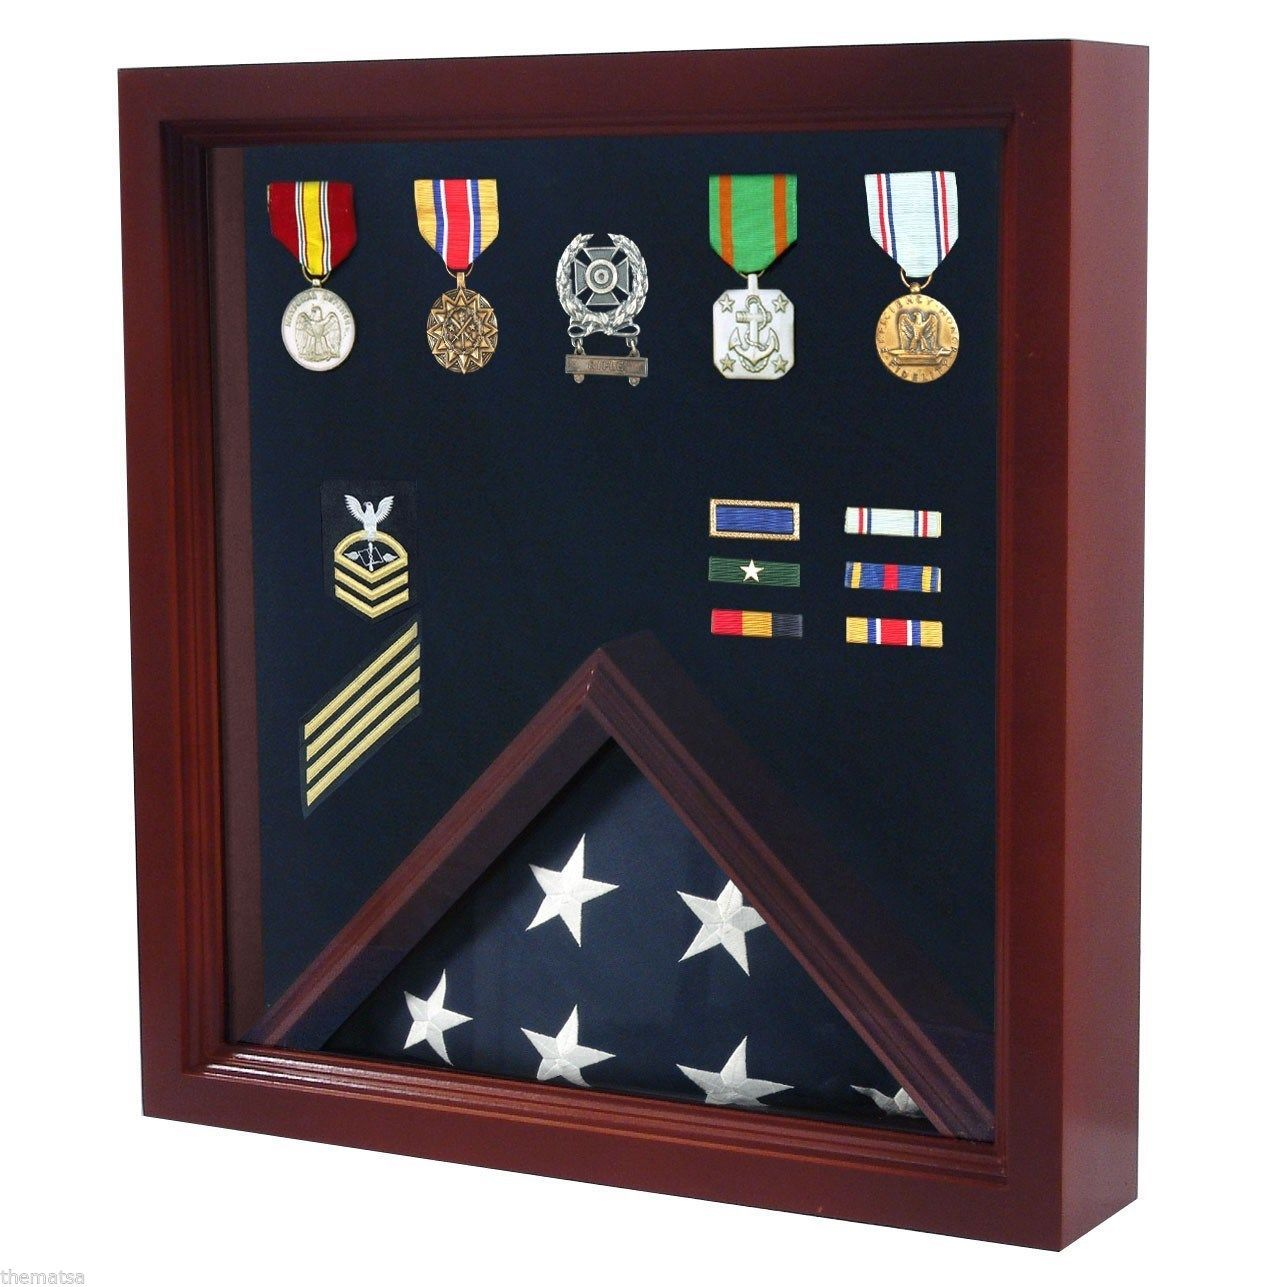 Primary image for USA MADE SOLID WOOD CHERRY FINISH MILITARY FLAG MEDAL DISPLAY CASE SHADOW BOX